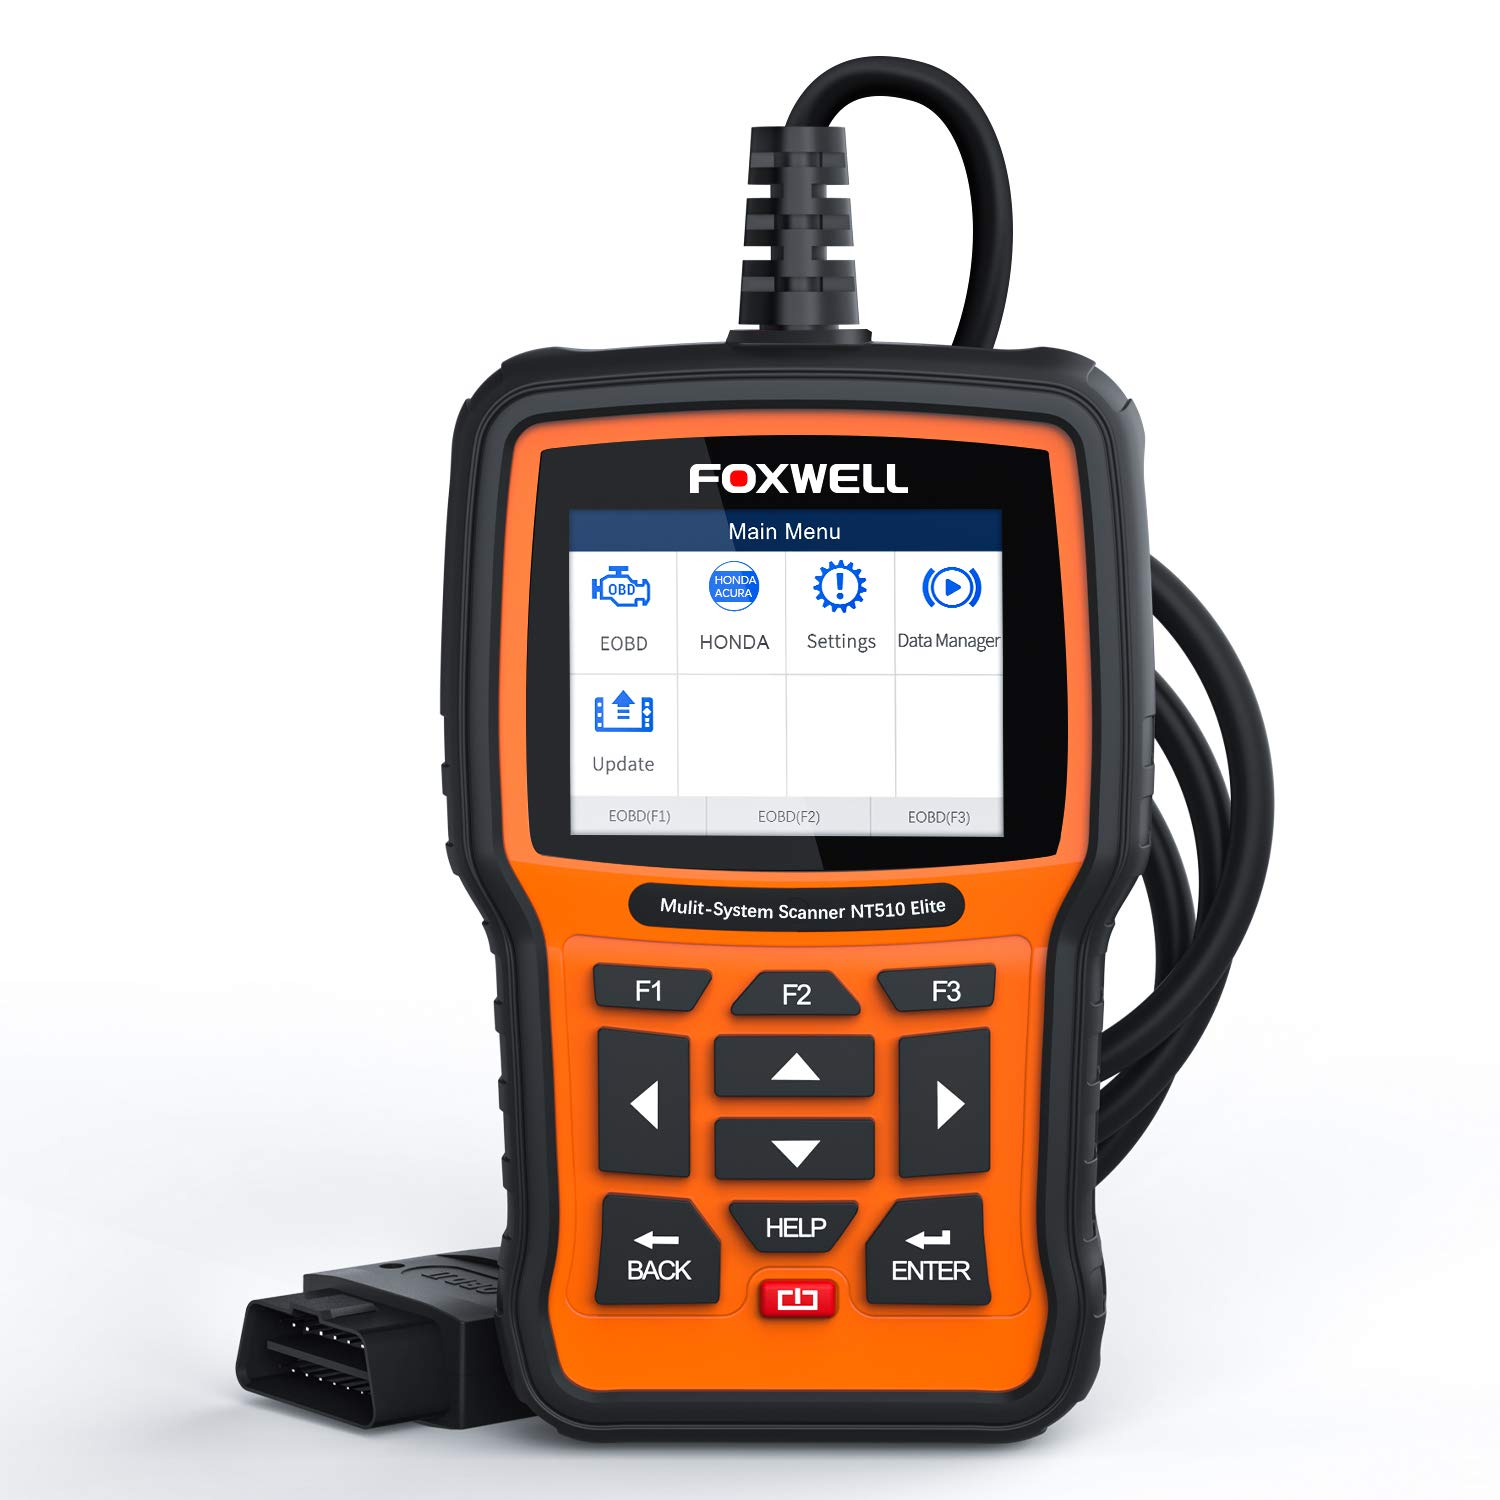 FOXWELL NT510 Elite OBD2 Bi-Directional Scan Tool for Honda Acura All  System Diagnostics ABS SRS Transmission Battery Registeration Auto Bleed  TPS SAS